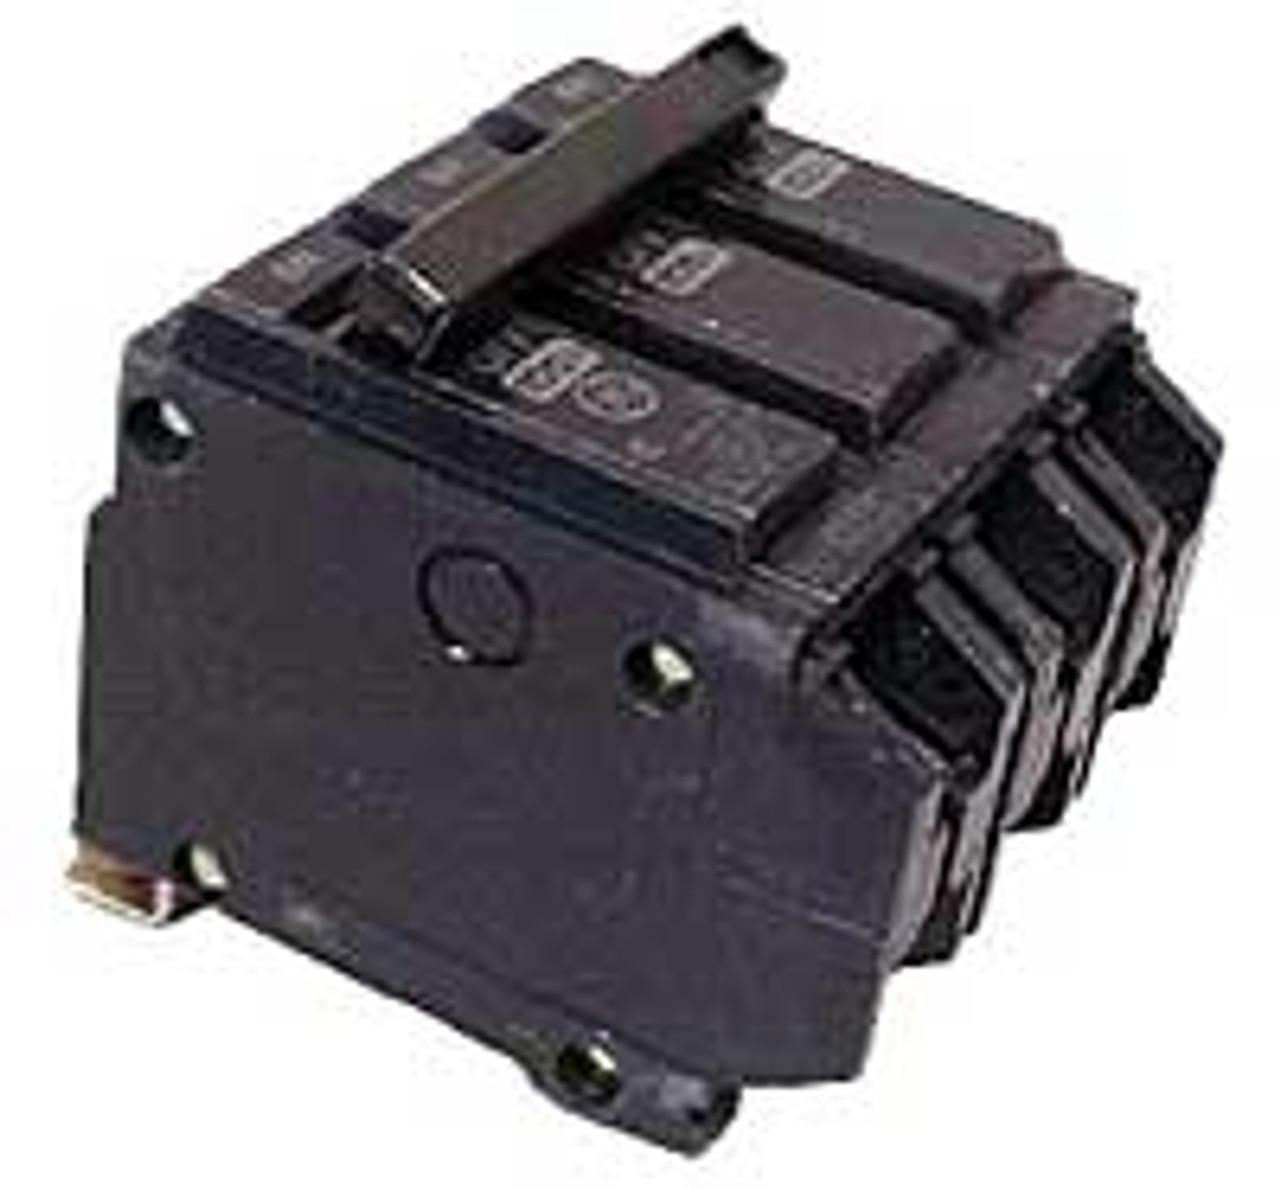 General Electric THQB32030ST1 3P 30A 240V Shunt Circuit Breaker - New